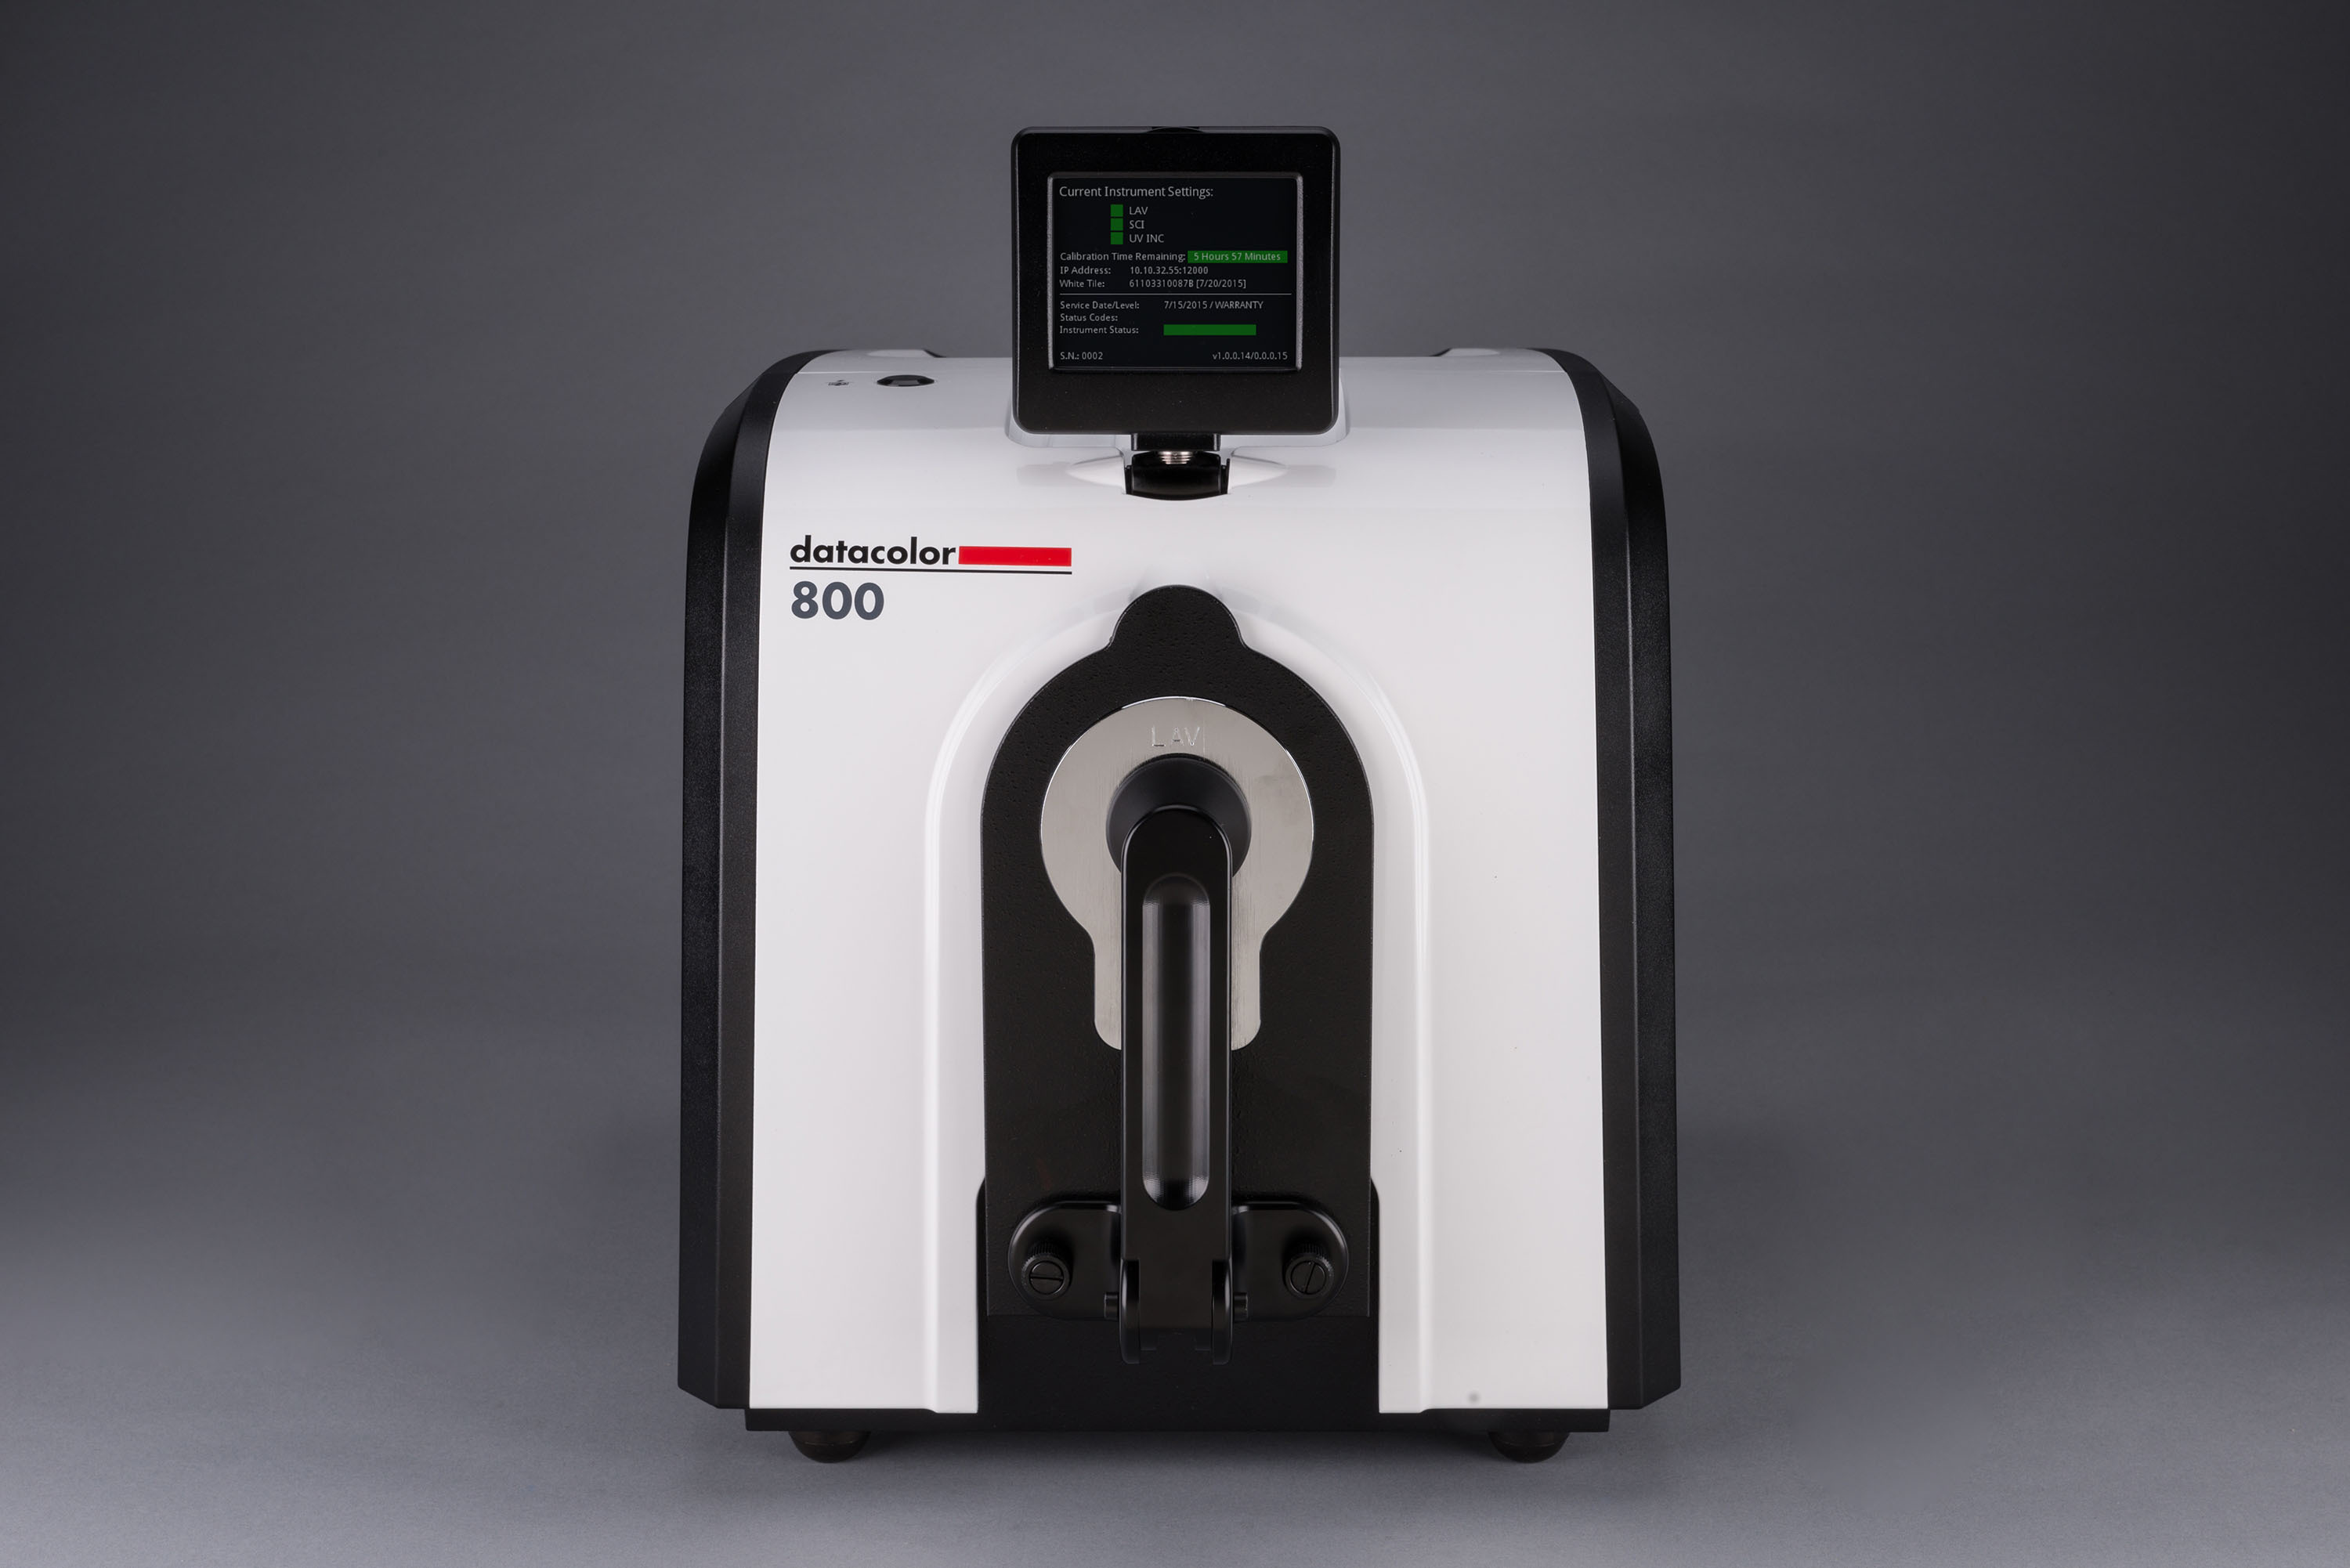 Datacolor 800 Spectrophotometers (Photo: Business Wire)